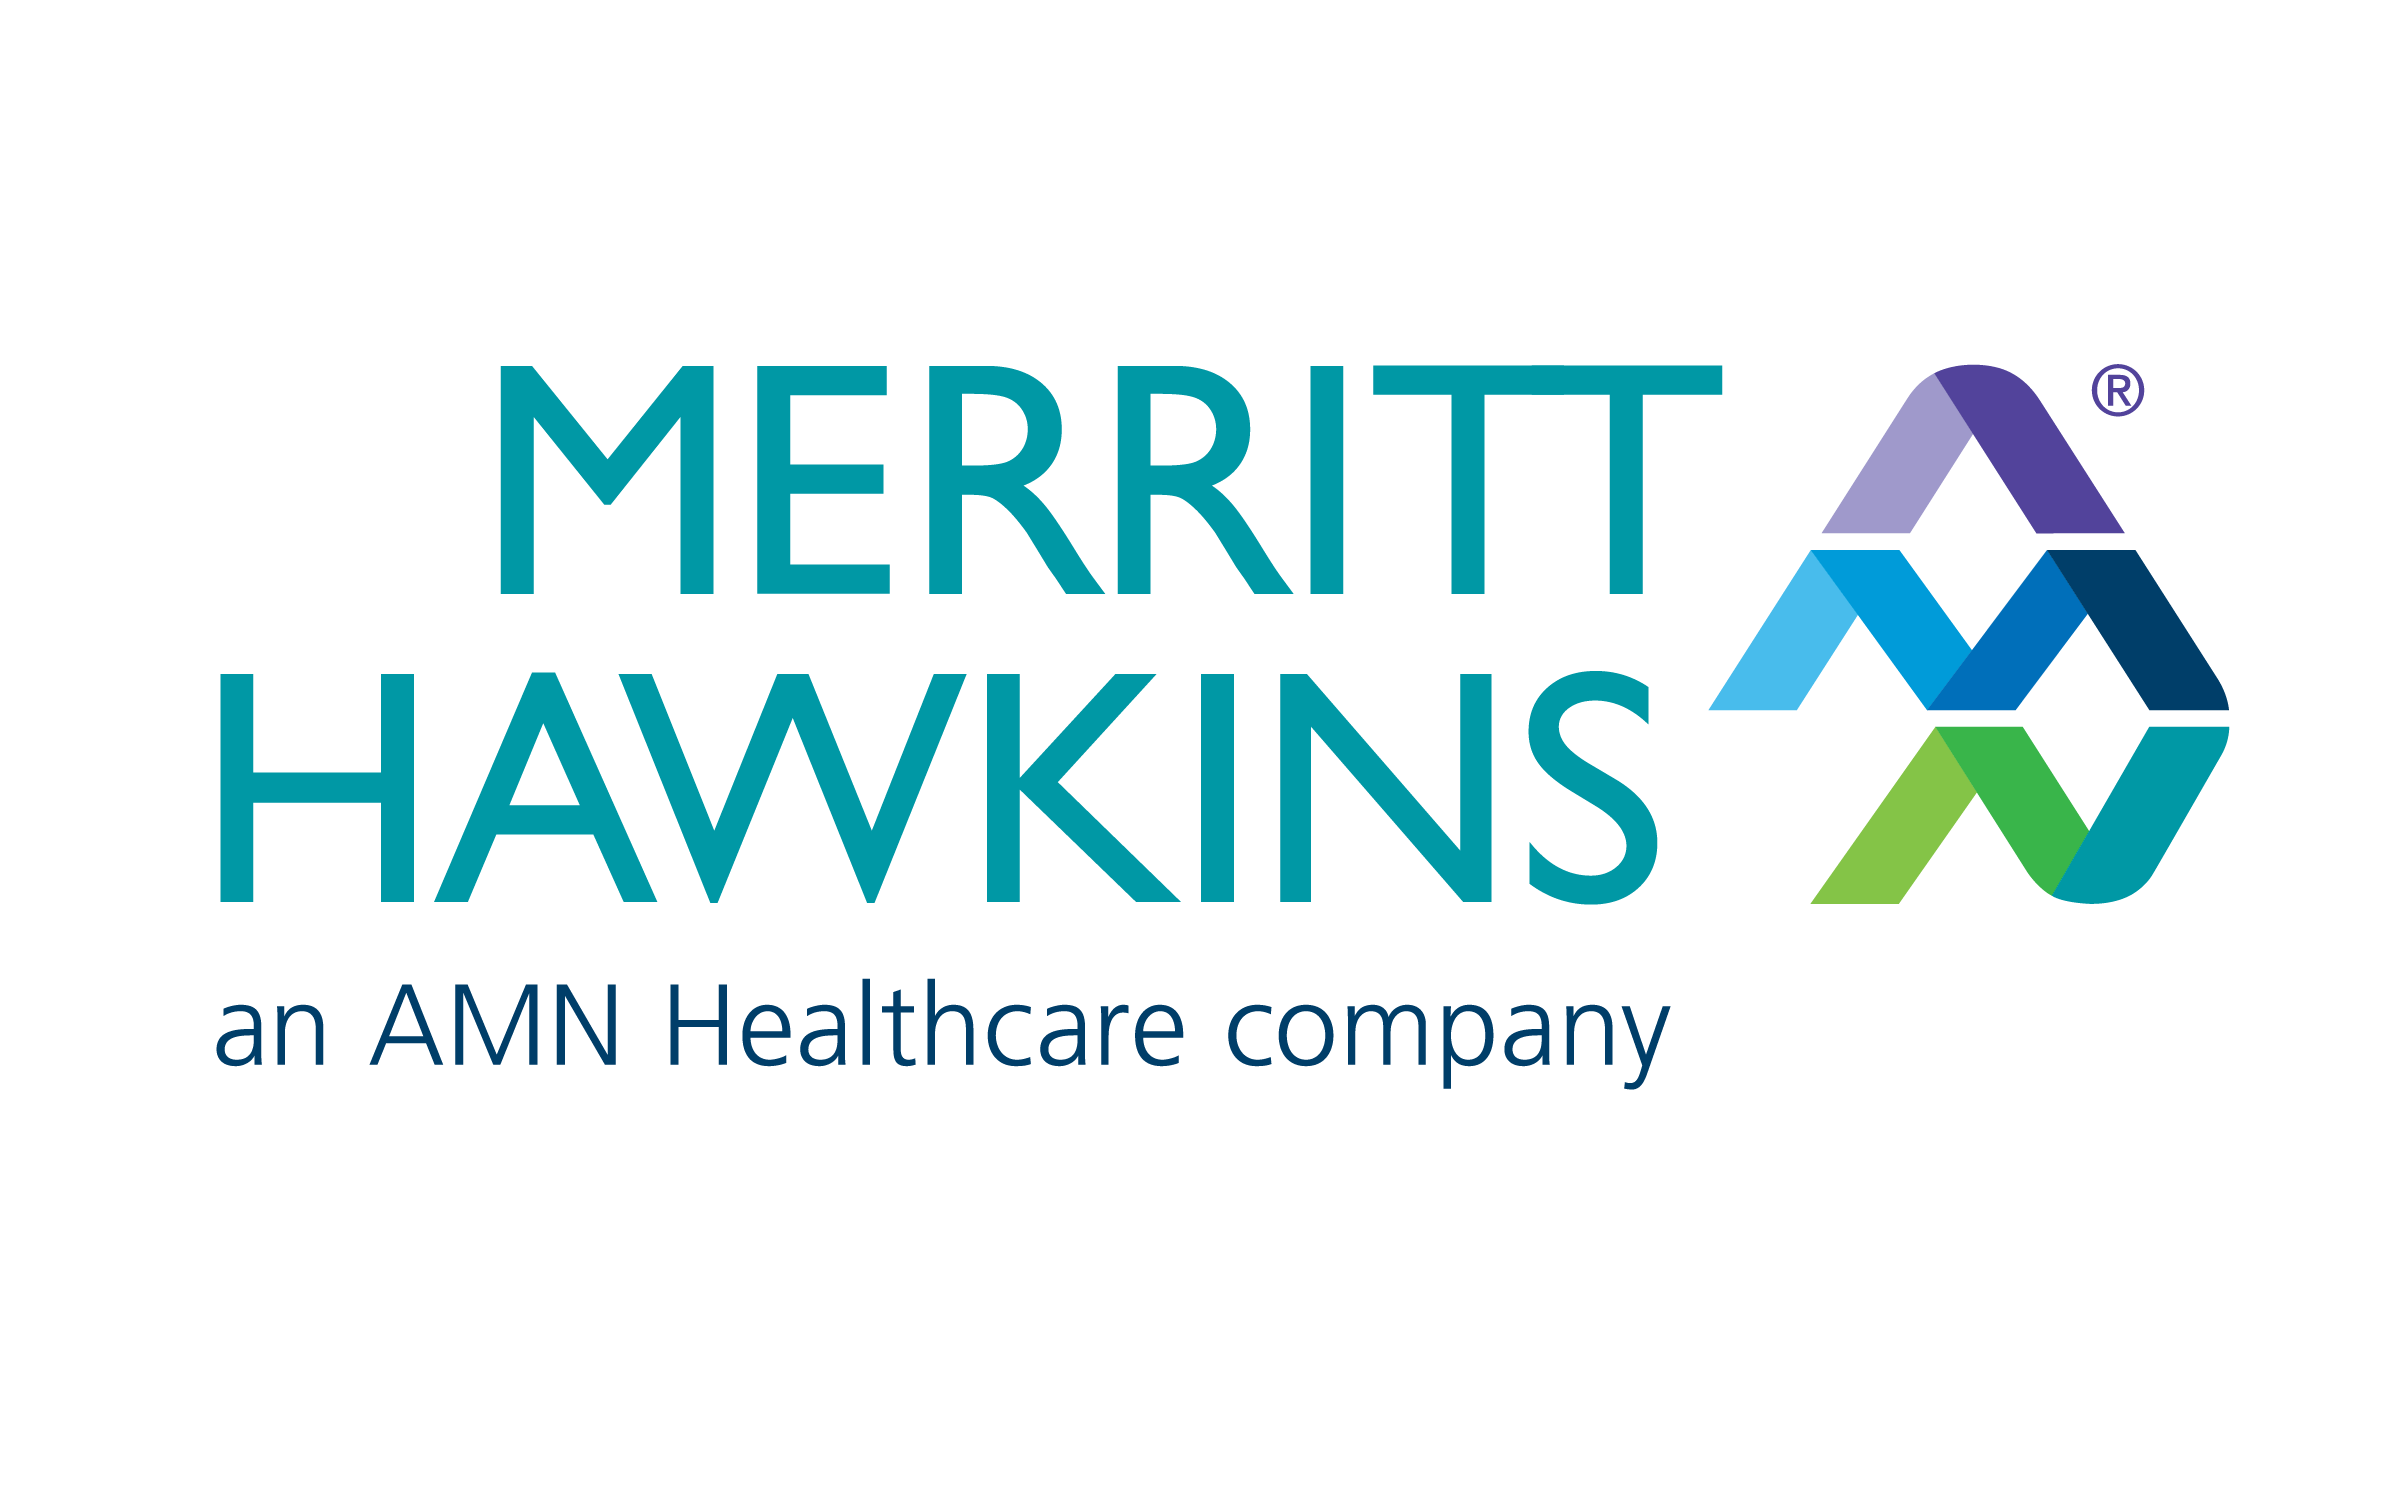 Merritt Hawkins/Staff Care